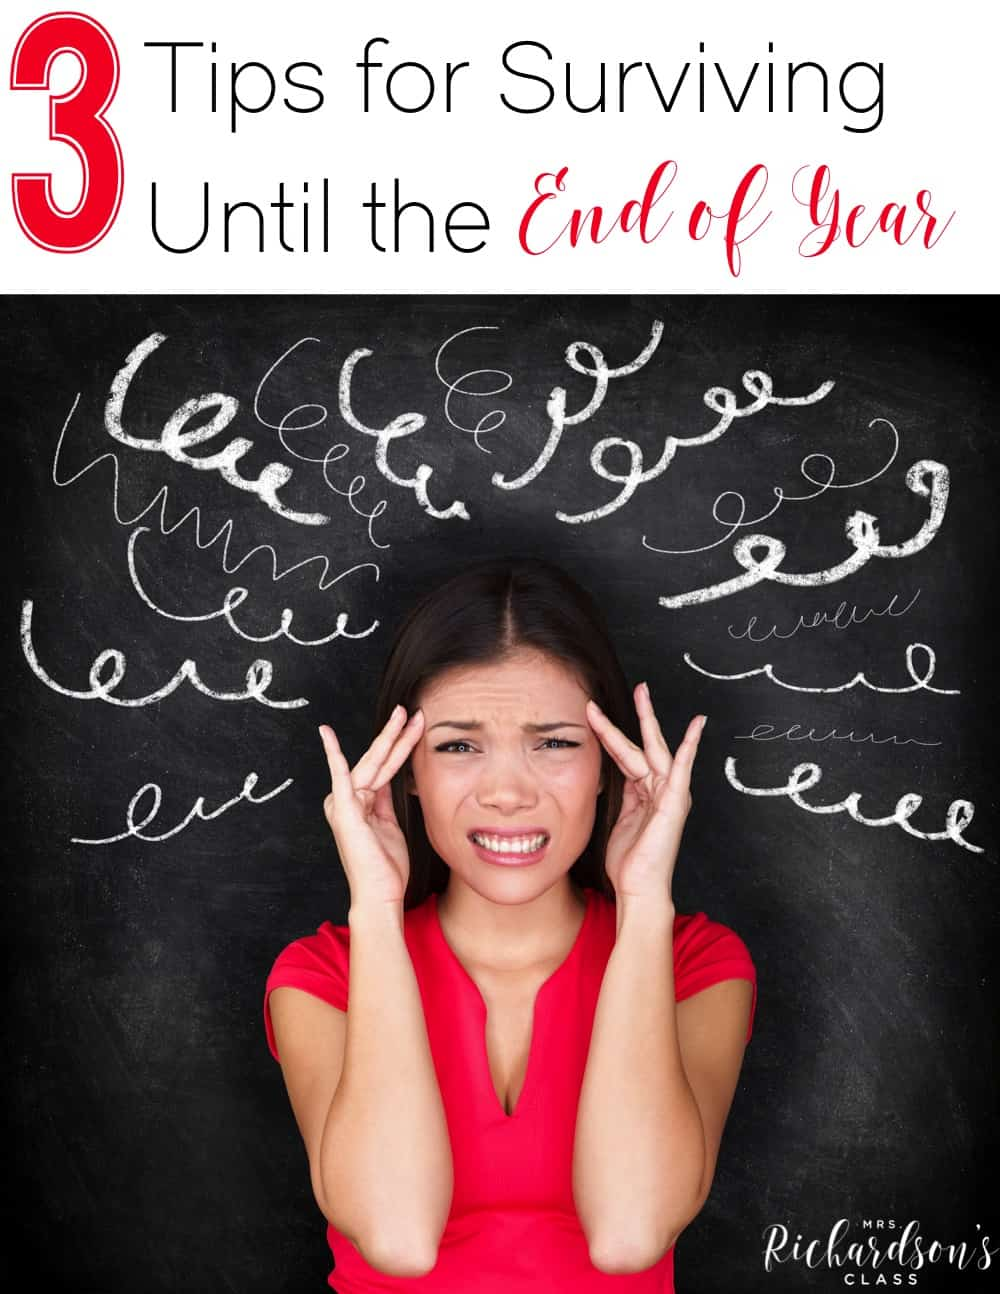 Sometimes the end of the year makes you want to pull your hair out! These 3 tips are just what you need to make it through!